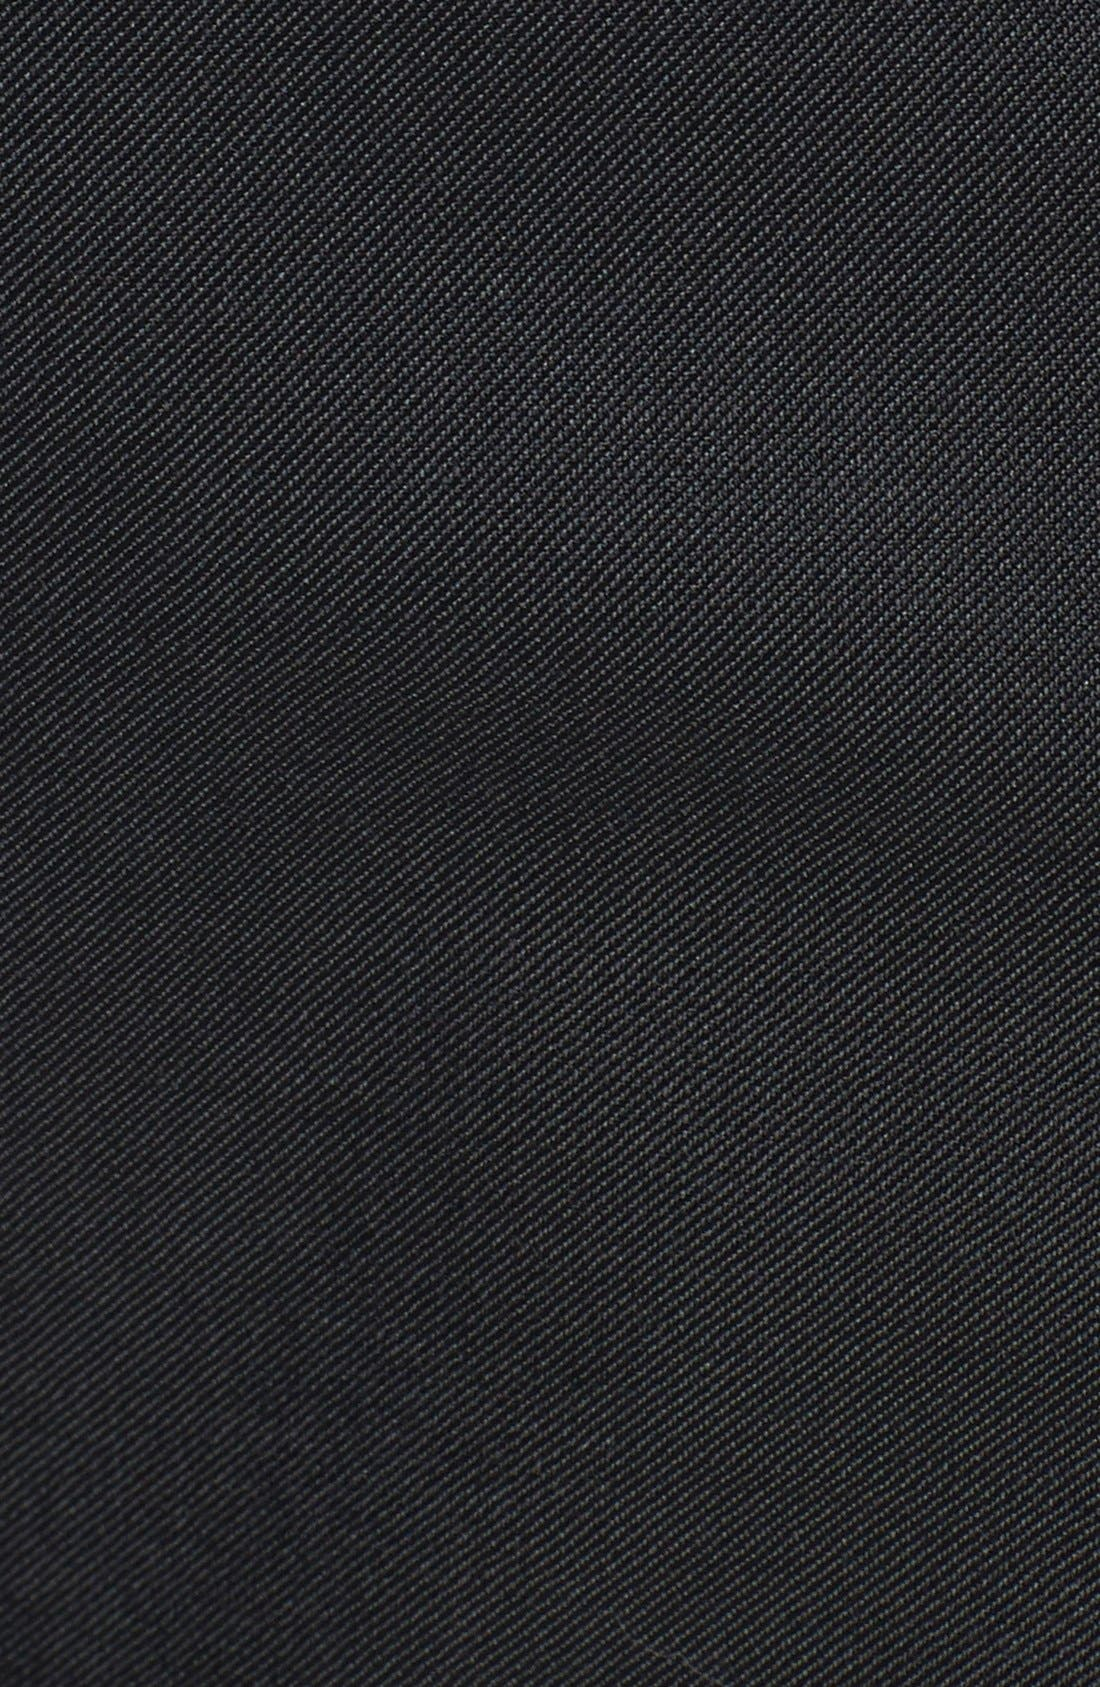 Huge/Genius Trim Fit Wool Suit,                             Alternate thumbnail 7, color,                             Charcoal